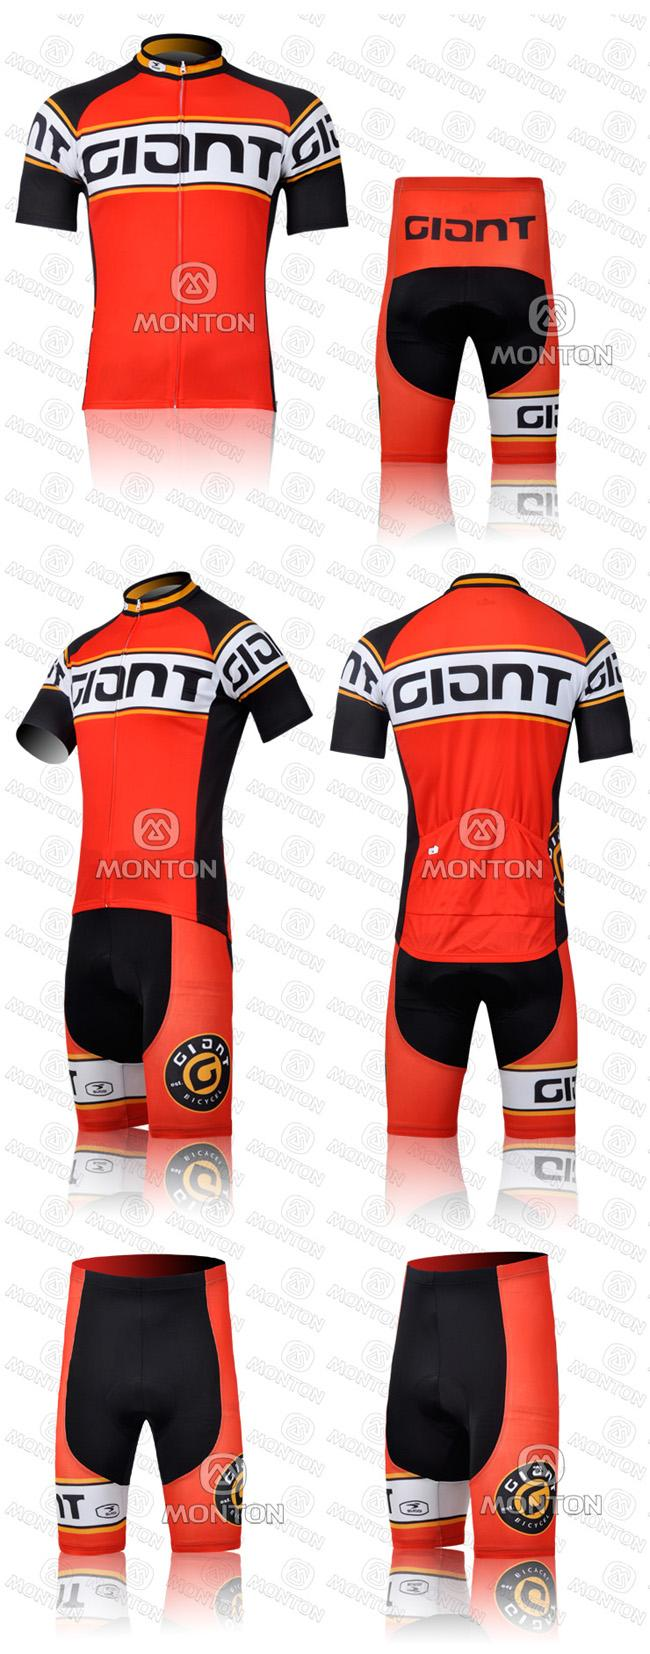 2011 GIANT Retro version cycling jersey short bike bicycle MTB